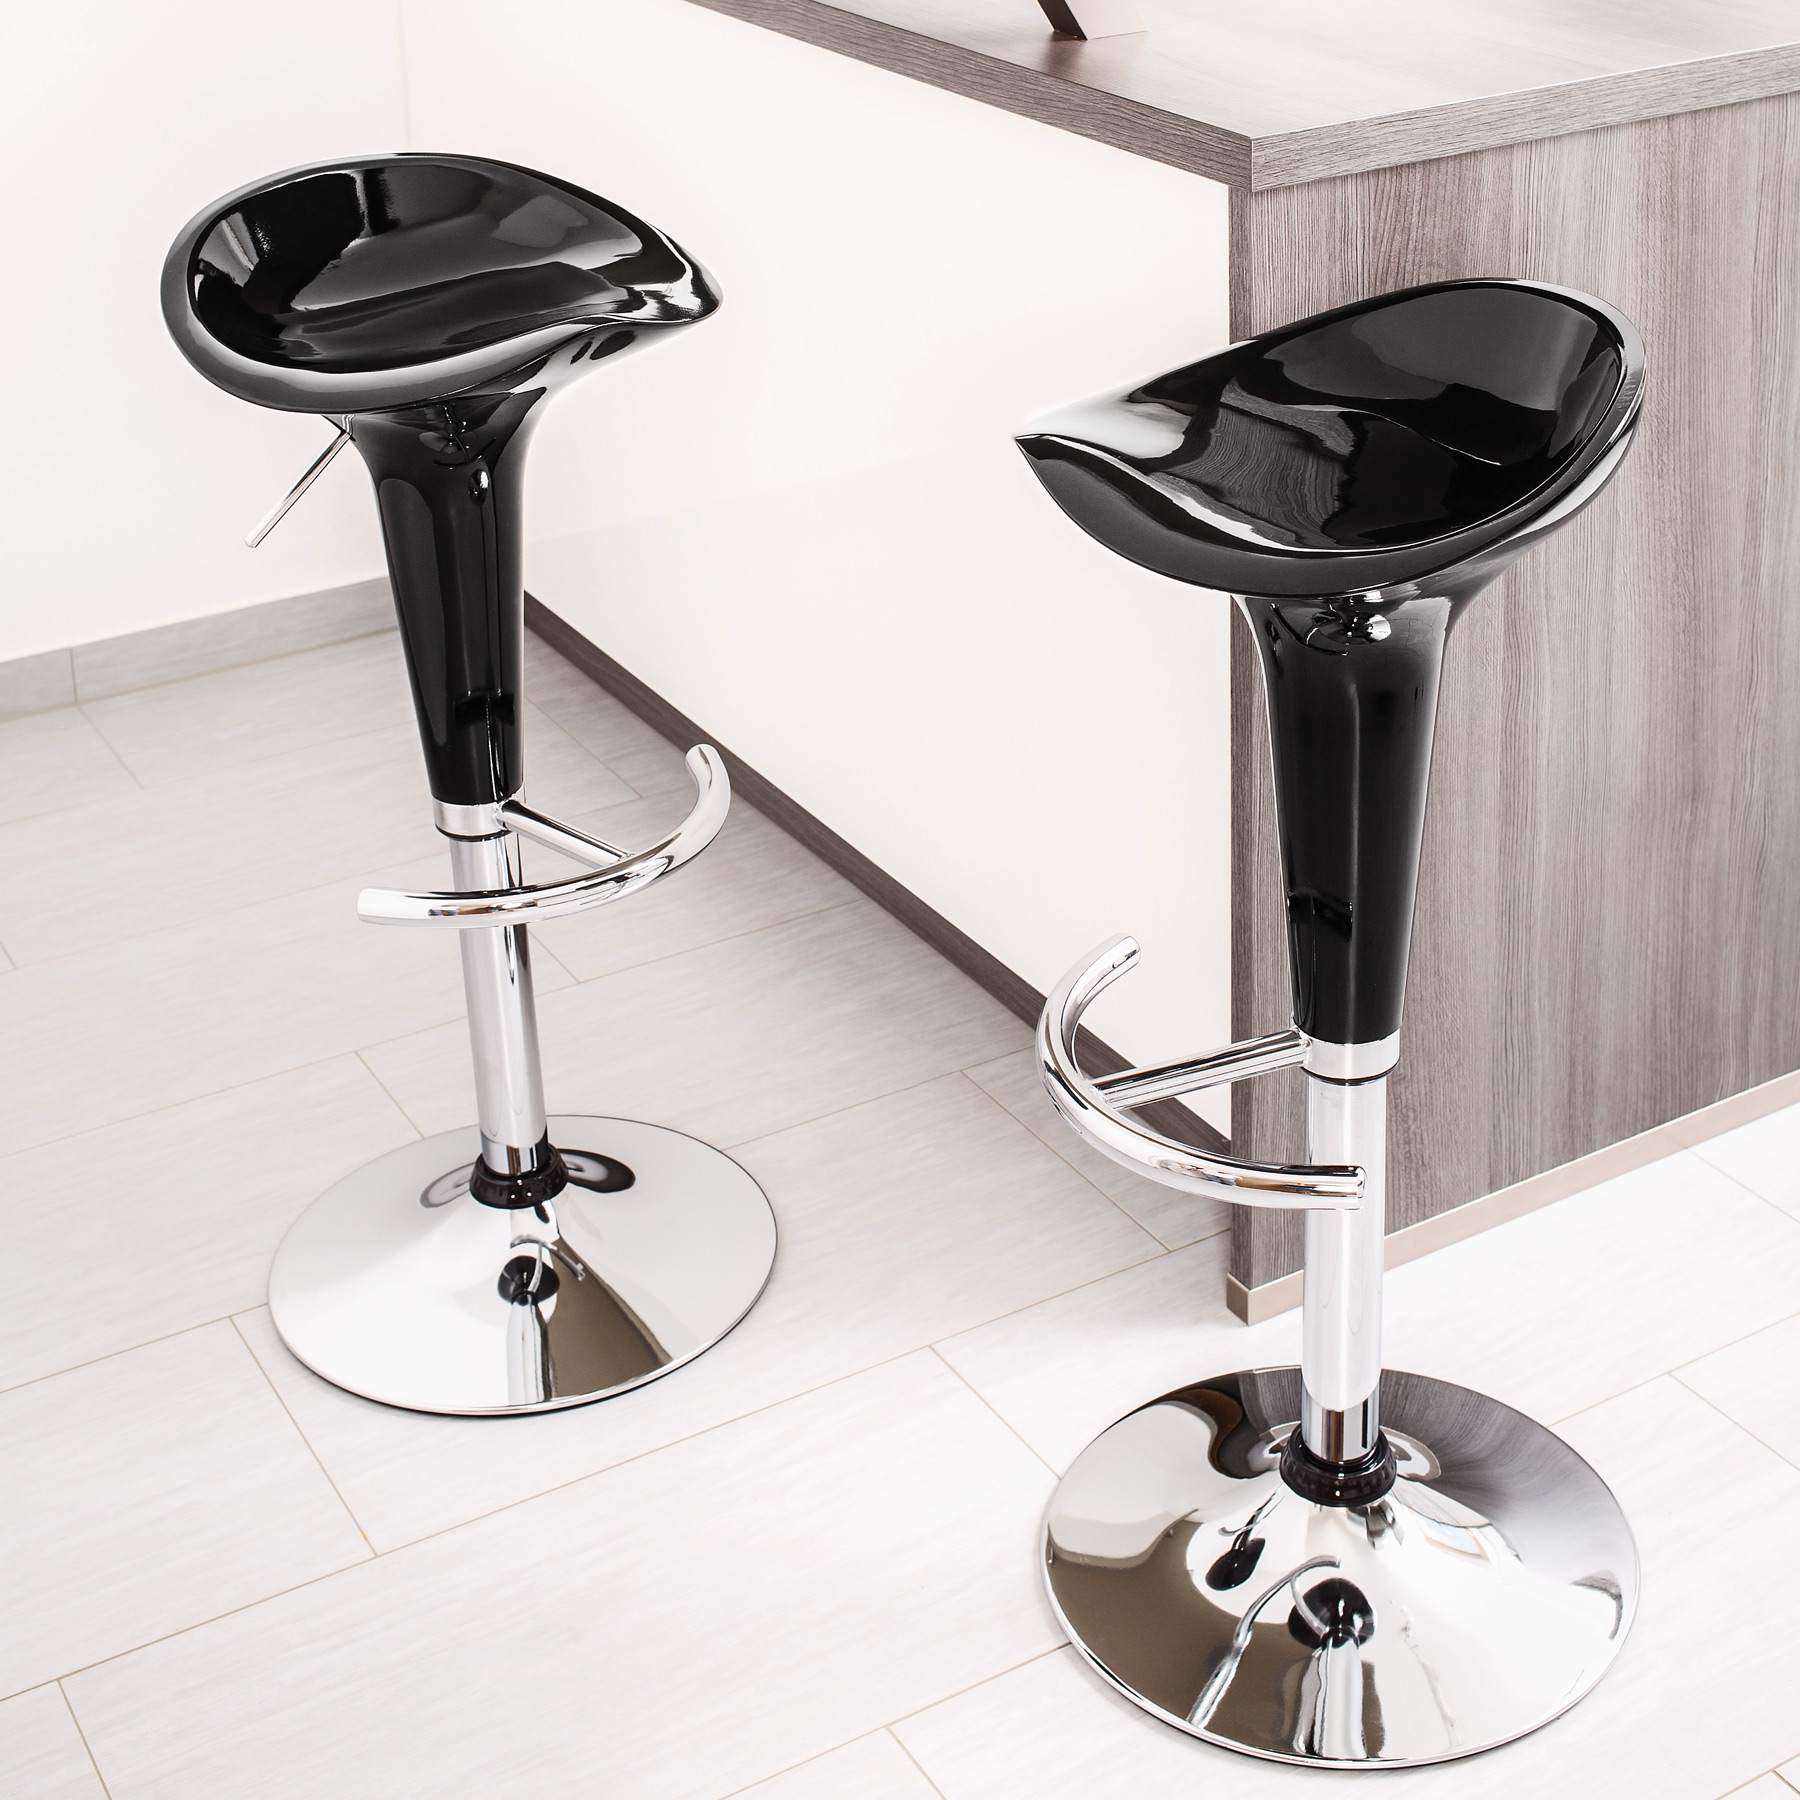 Black Kitchen Bar Stools Uk: 2 Bar Stools Set Kitchen Breakfast Stool Dining Chair